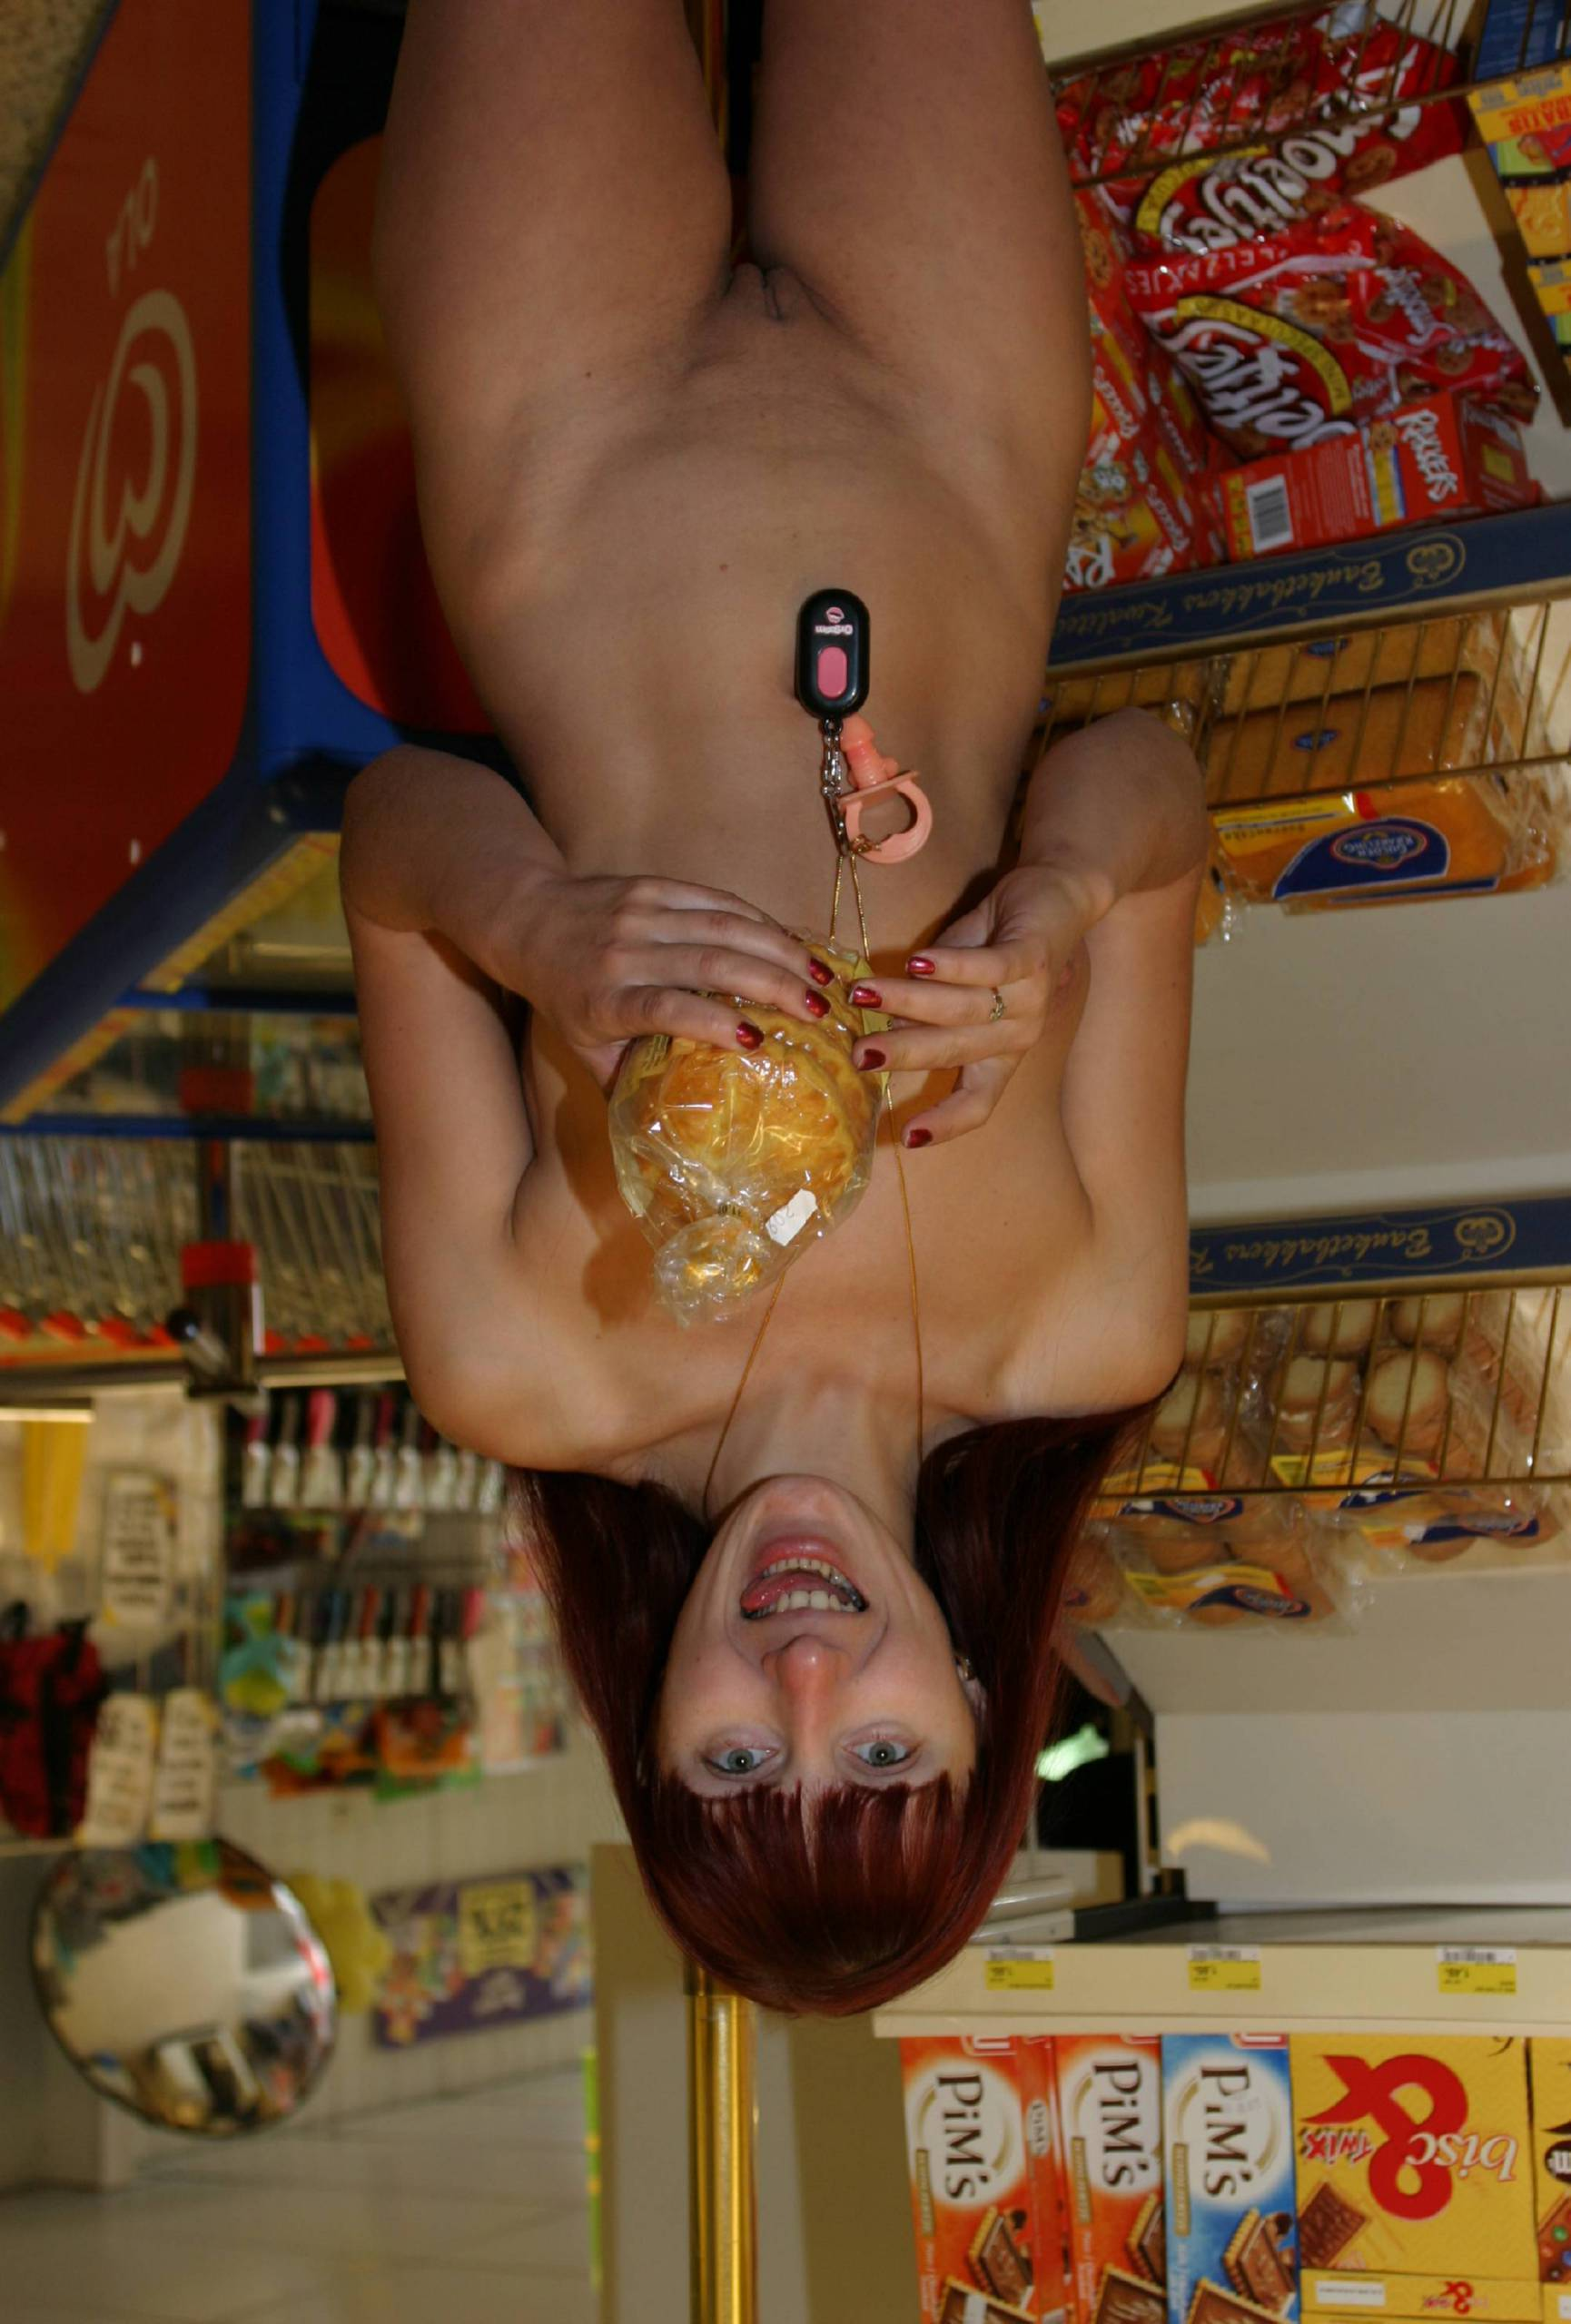 Nudist Gallery Holland Store Shopping - 2